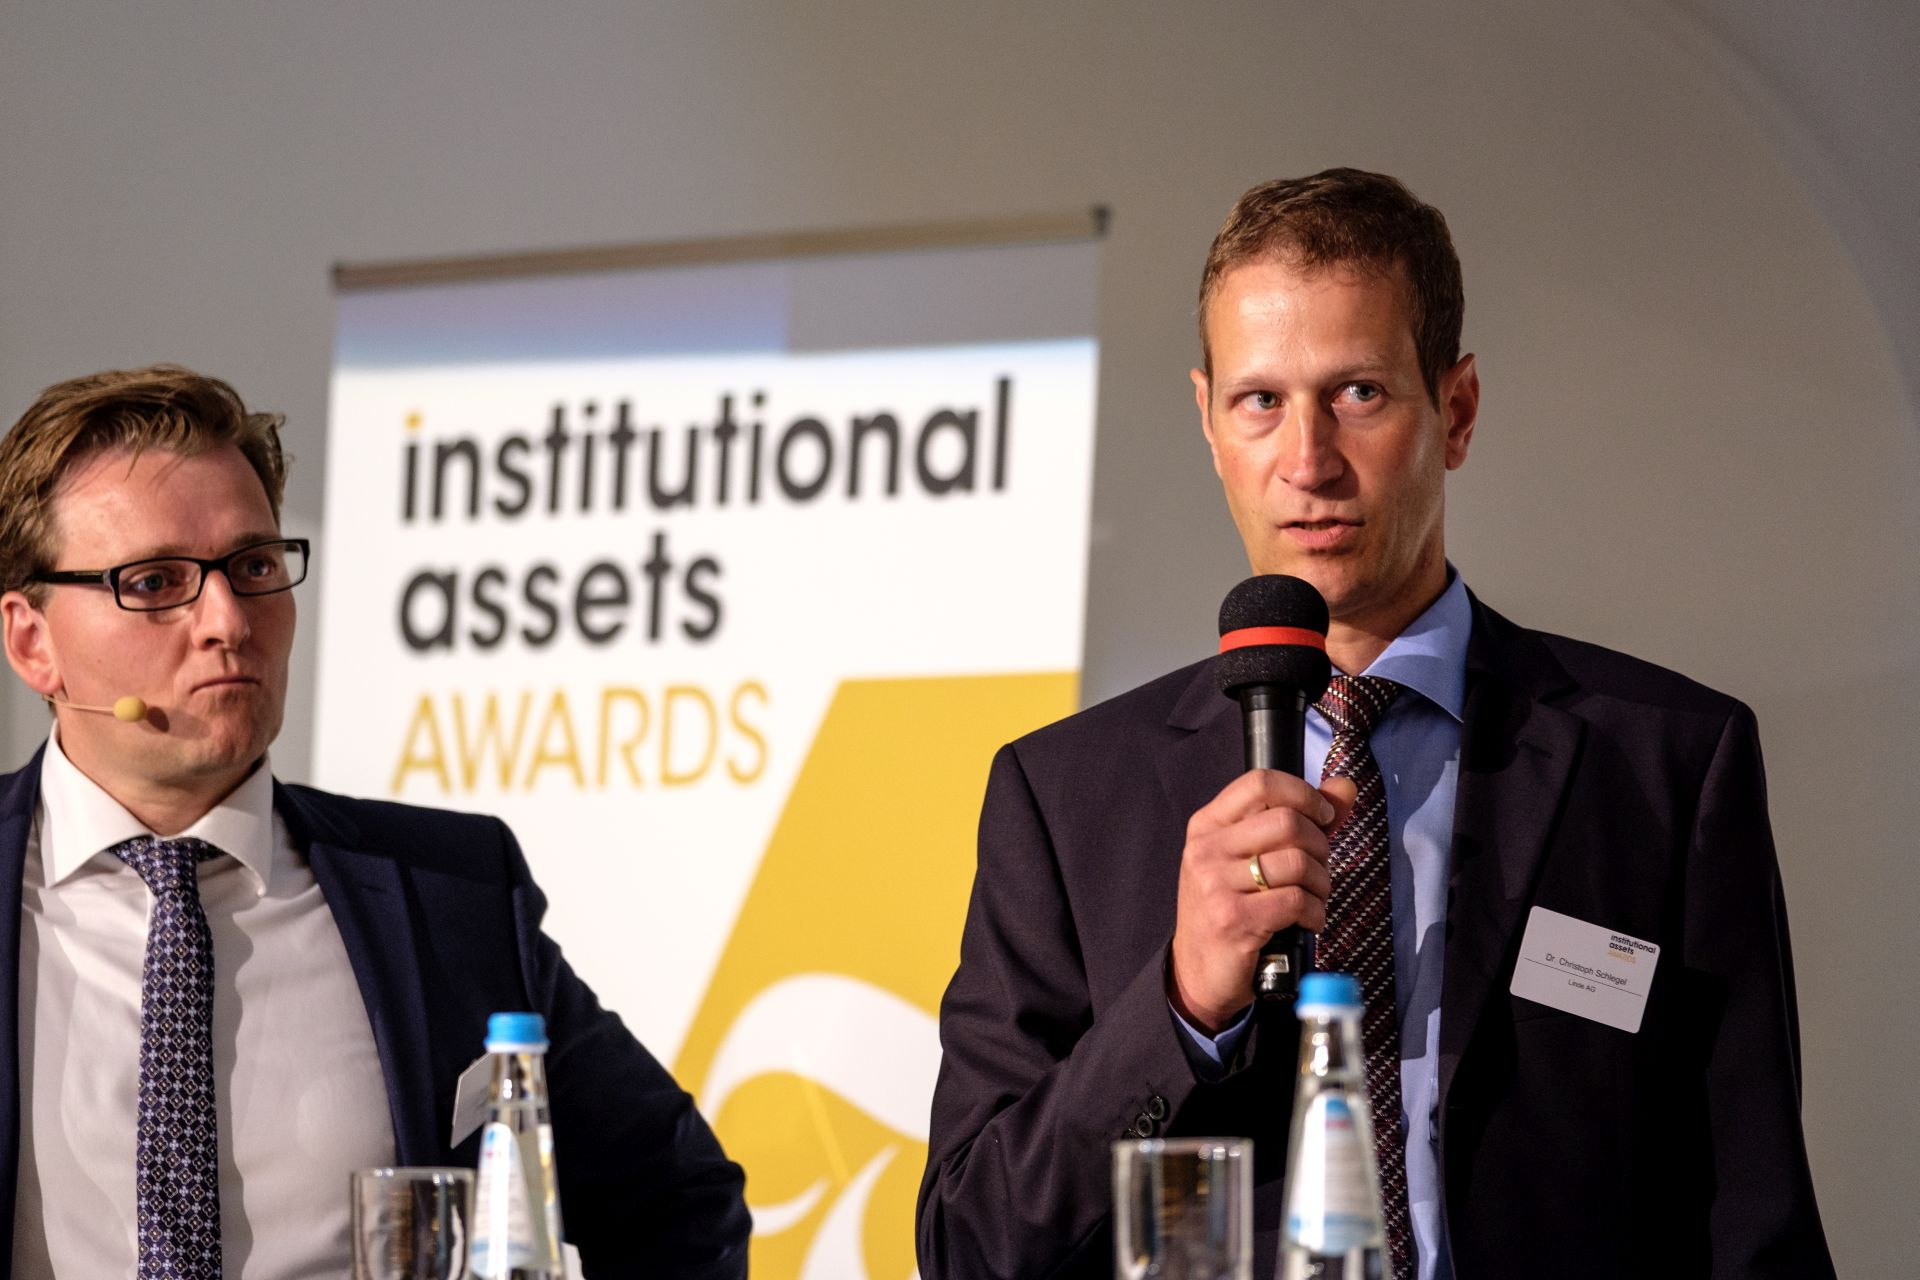 institutional-assets-awards-088